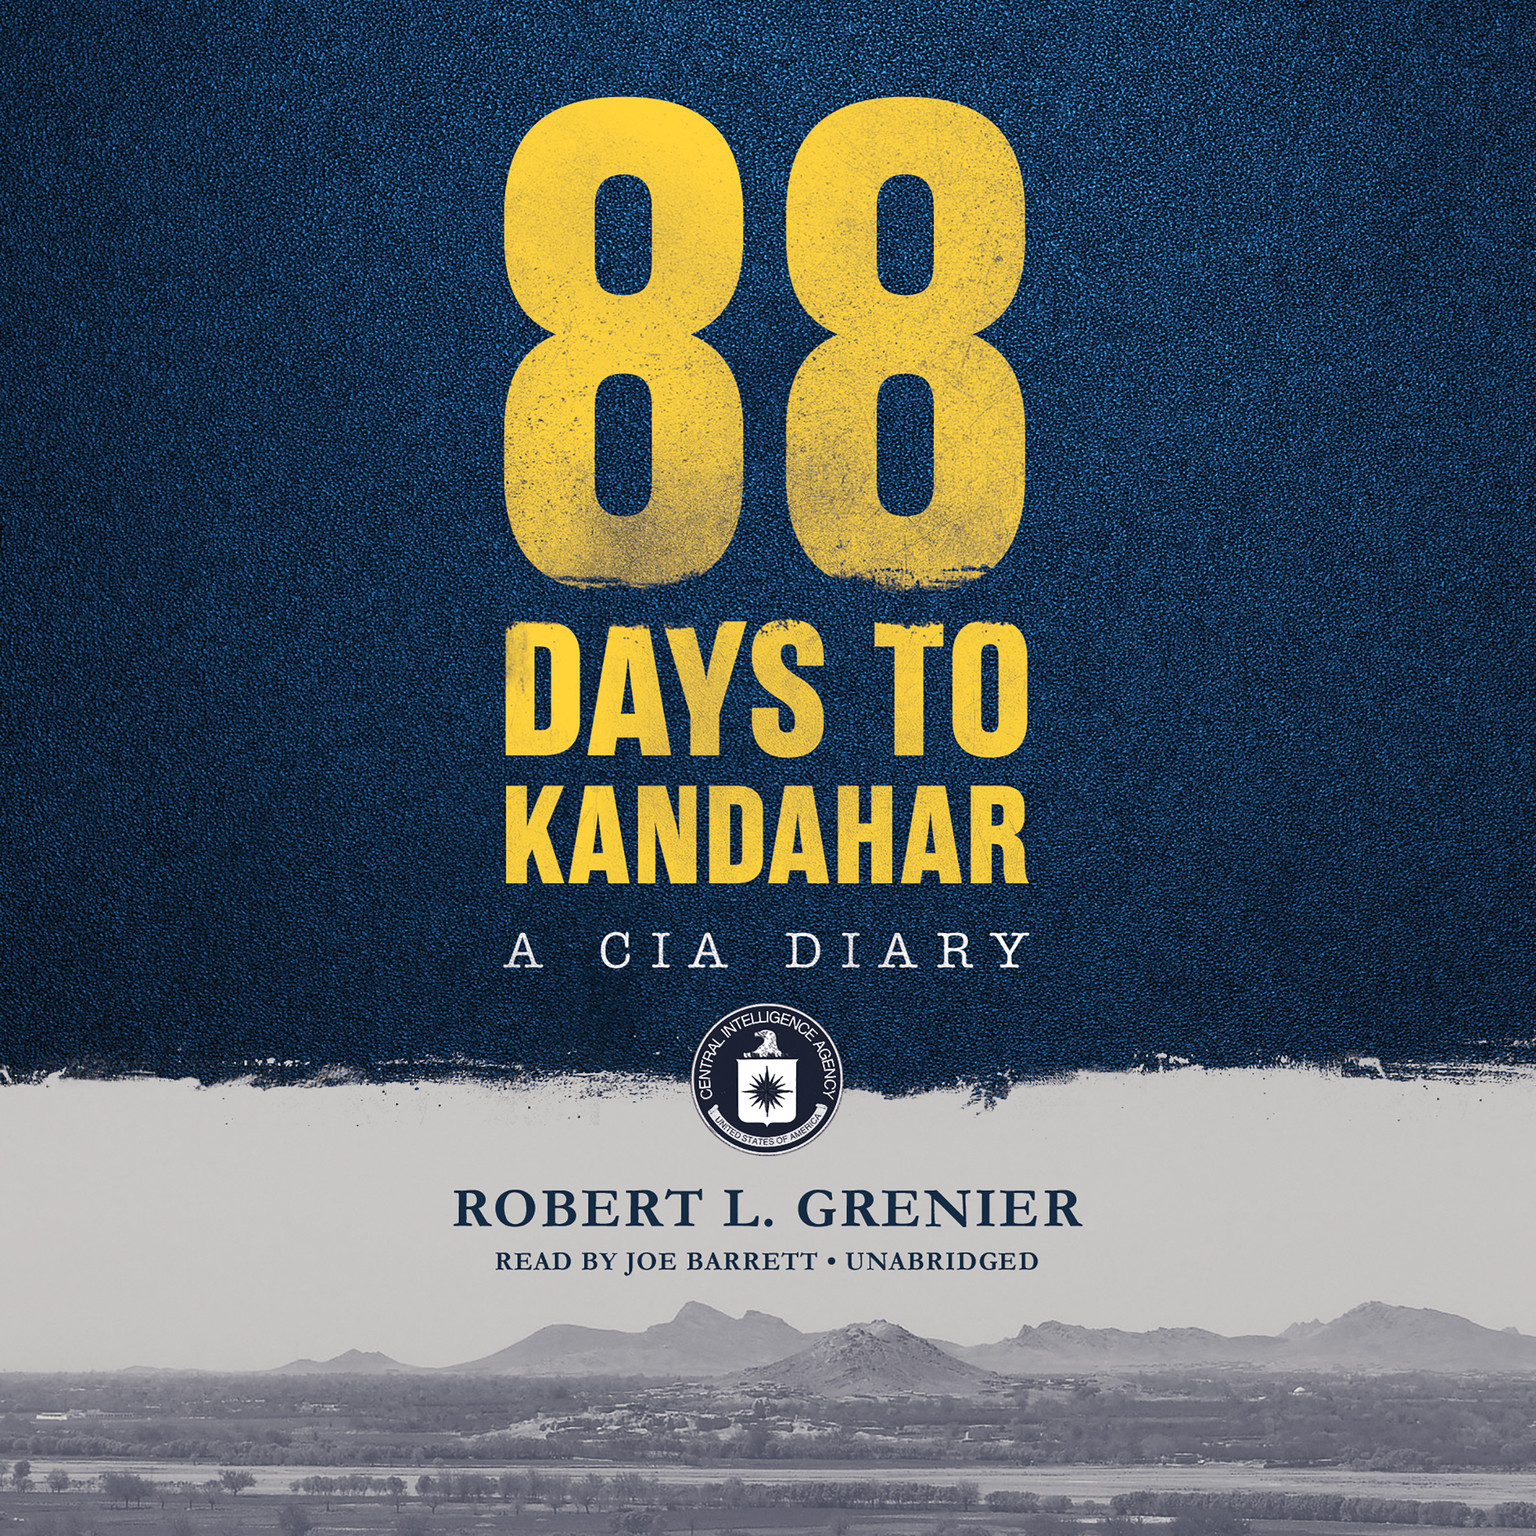 Printable 88 Days to Kandahar: A CIA Diary Audiobook Cover Art